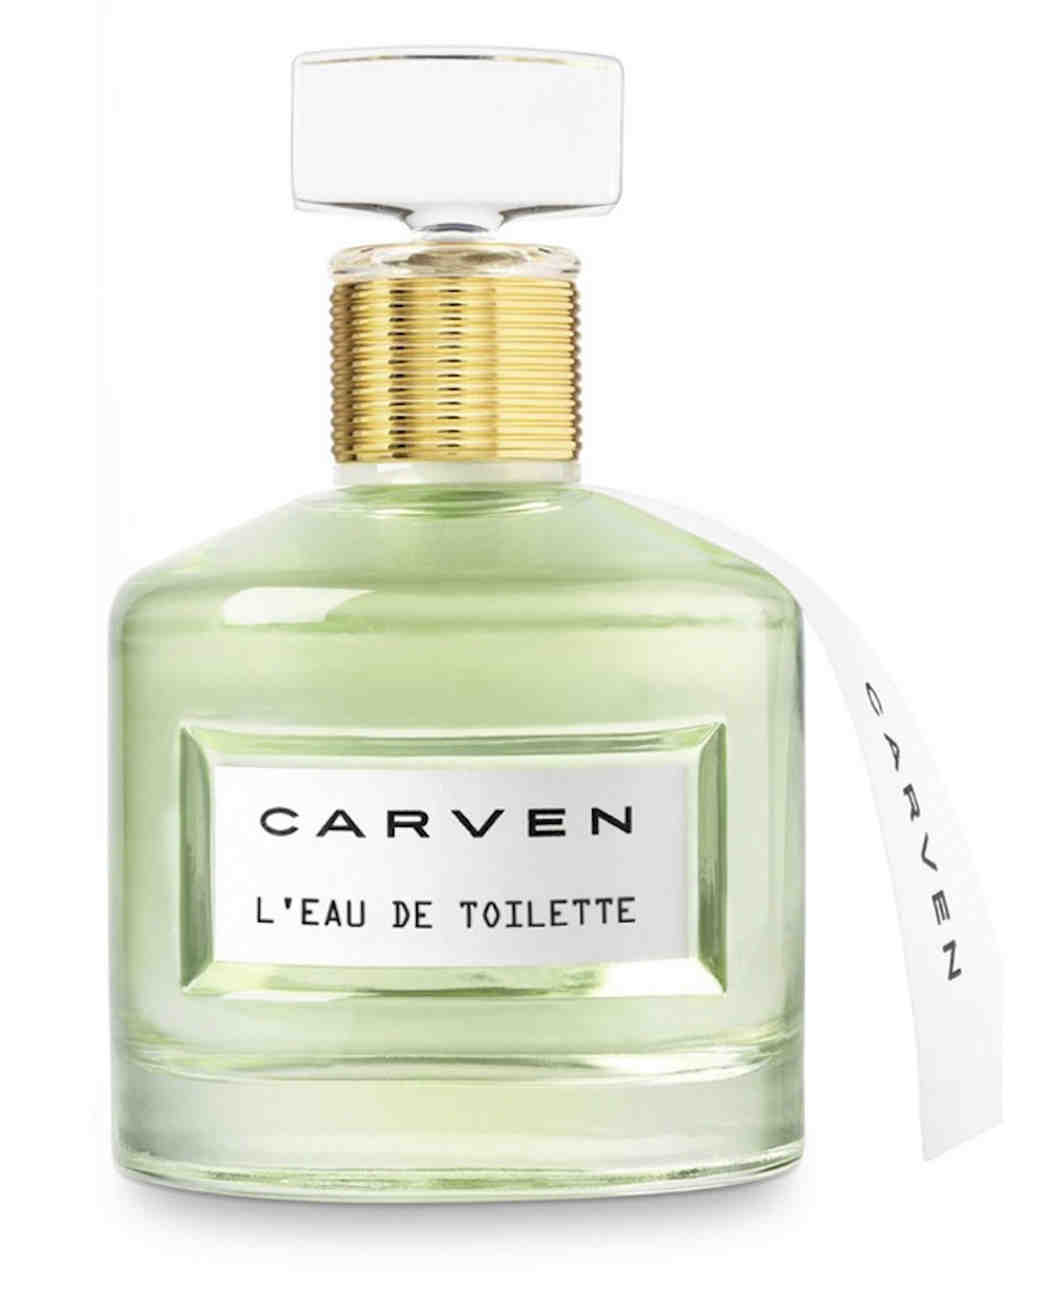 fragrances-summer-2014-carven-eau-de-toilette-0714.jpg